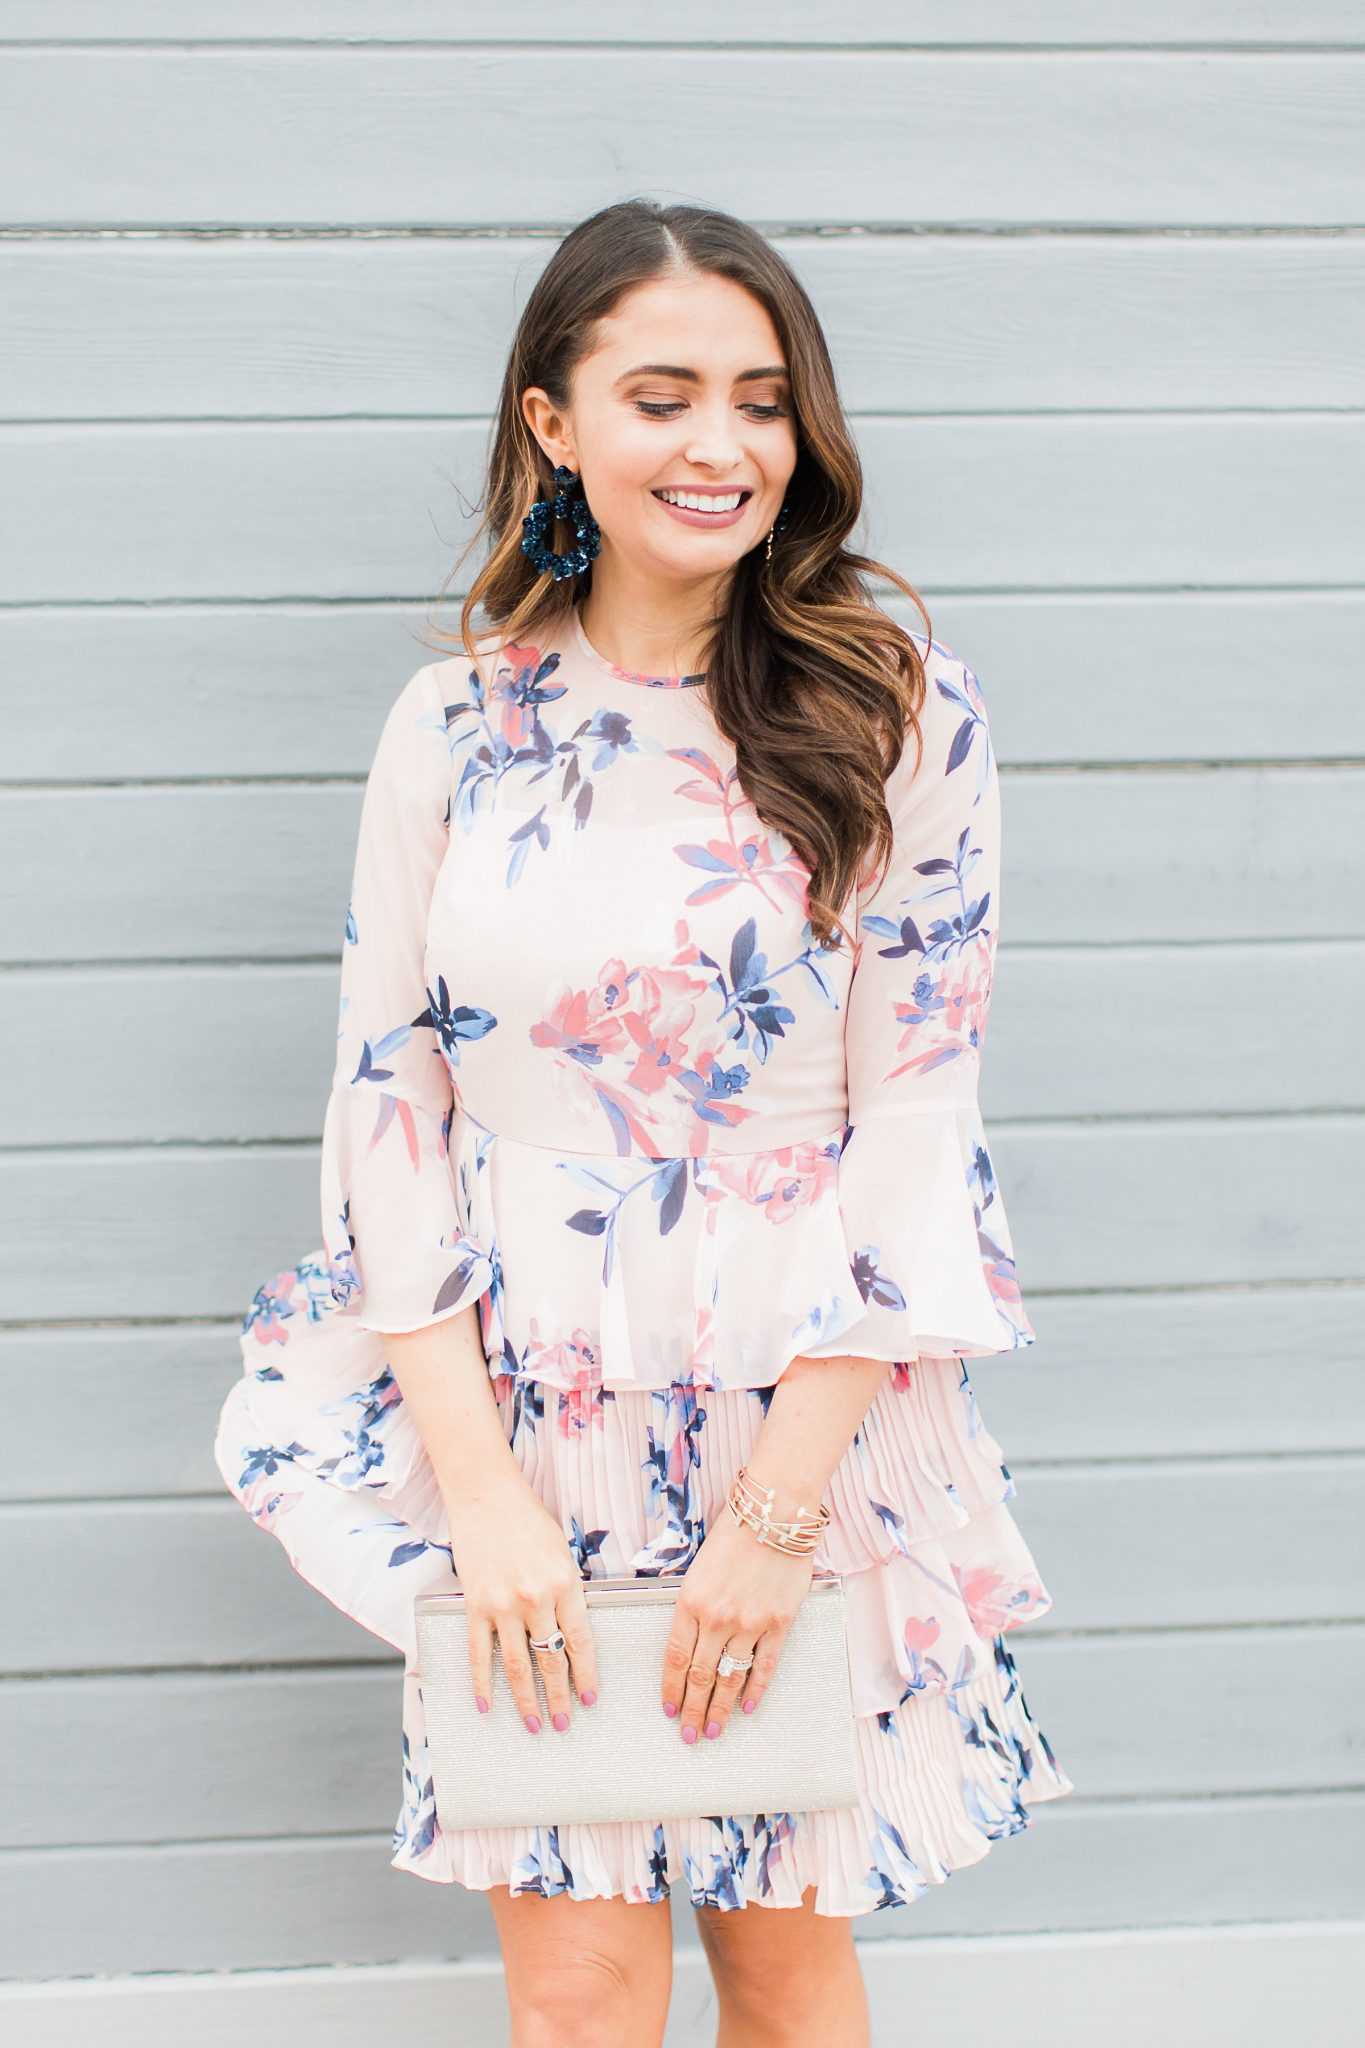 Pink floral dress with ruffles - Baublebar Earrings Sale Favorites by popular Orange County fashion blogger Maxie Elle